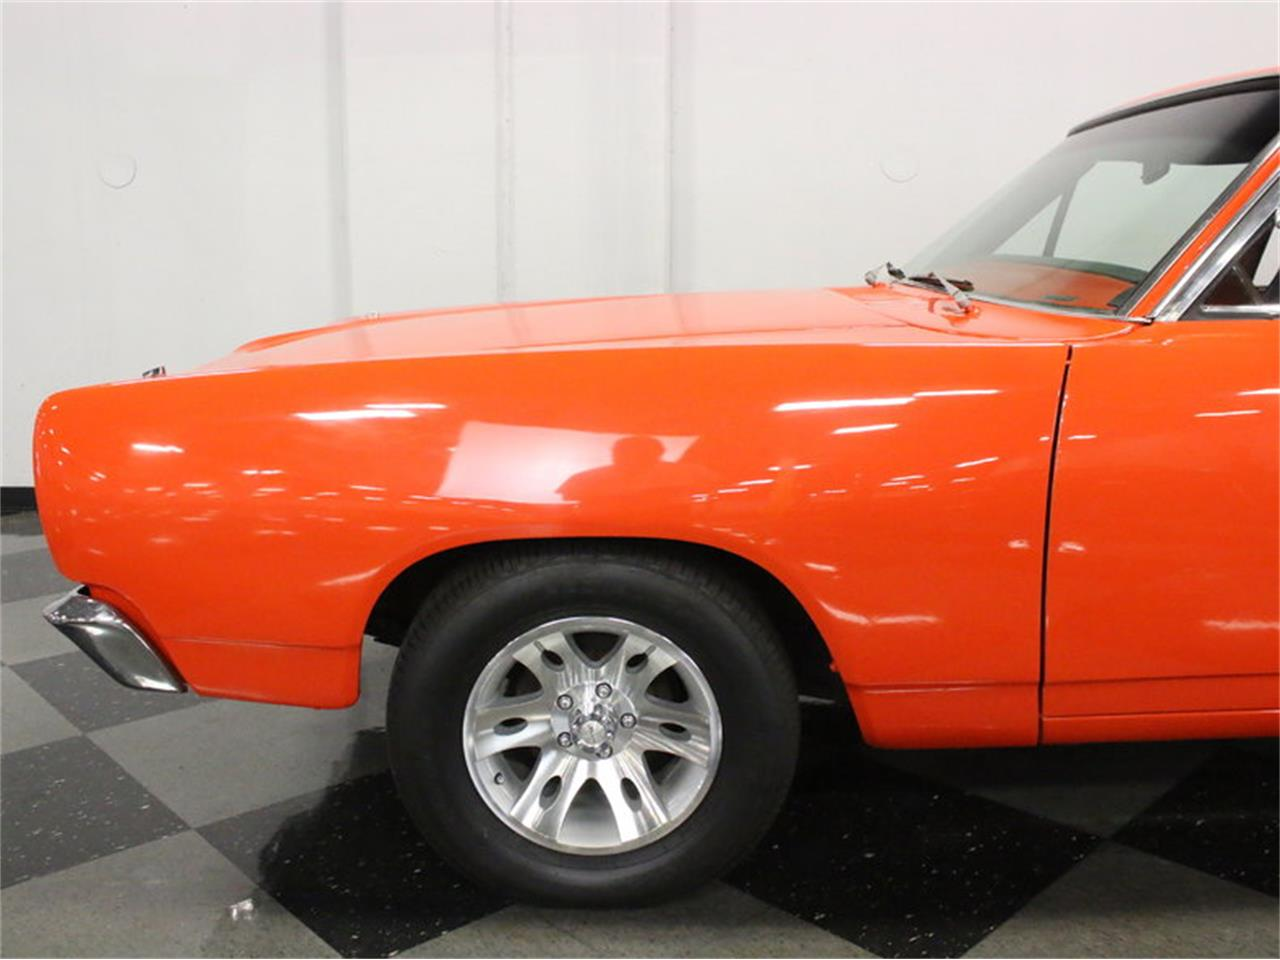 Large Picture of '69 Dodge Coronet located in Ft Worth Texas - $12,995.00 Offered by Streetside Classics - Dallas / Fort Worth - L5NW